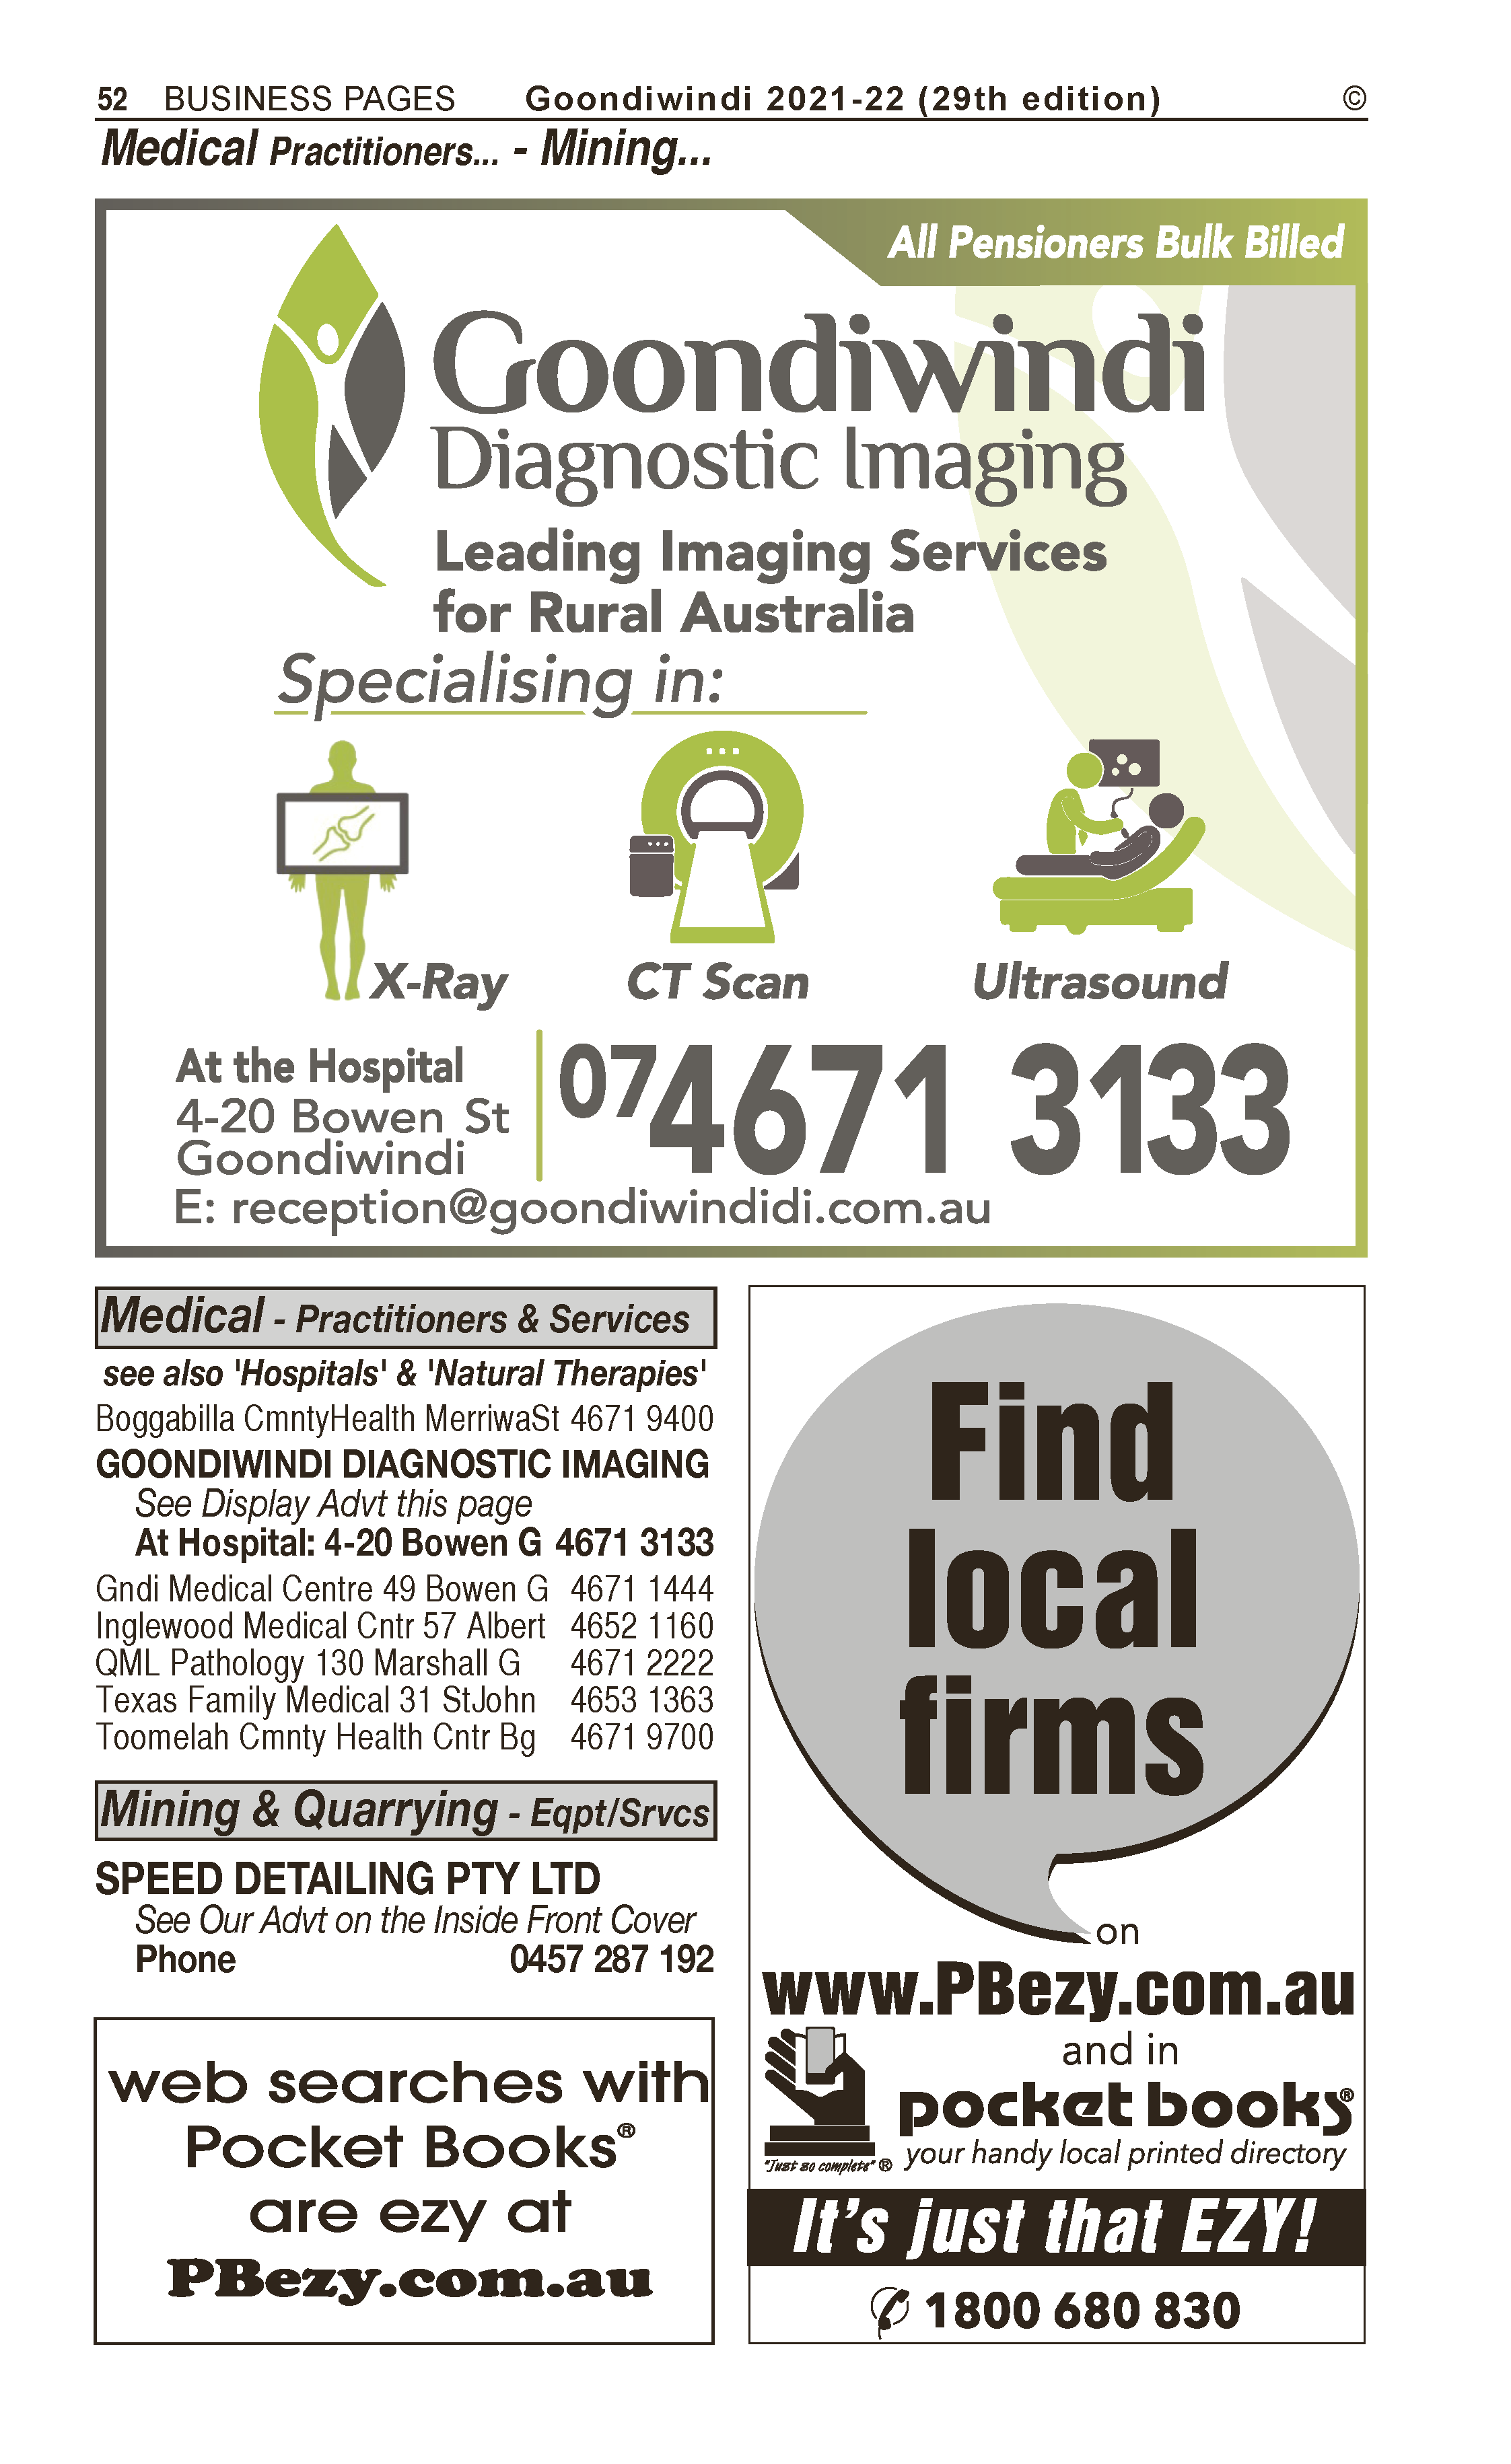 Stewart's Grain Trading | Agricultural – Consultants, Services in Goondiwindi | PBezy Pocket Books local directories - page 52